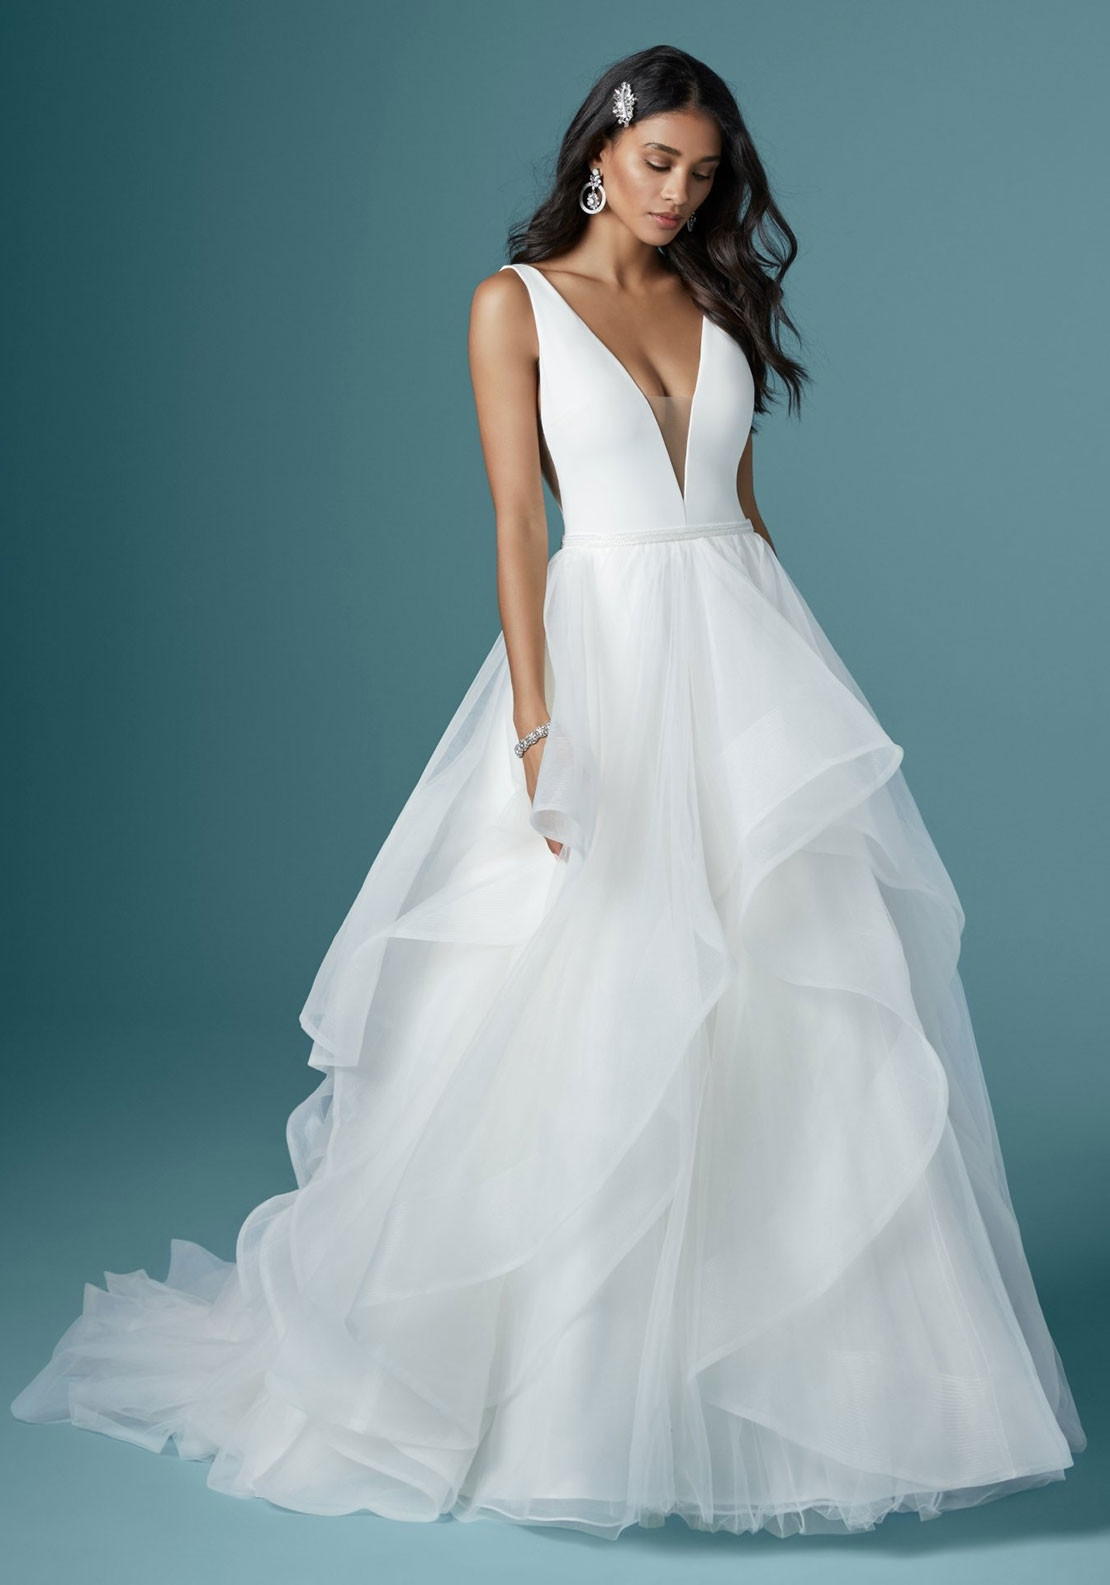 Maggie Sottero Fatima Wedding Dress Diamond White Mcelhinneys